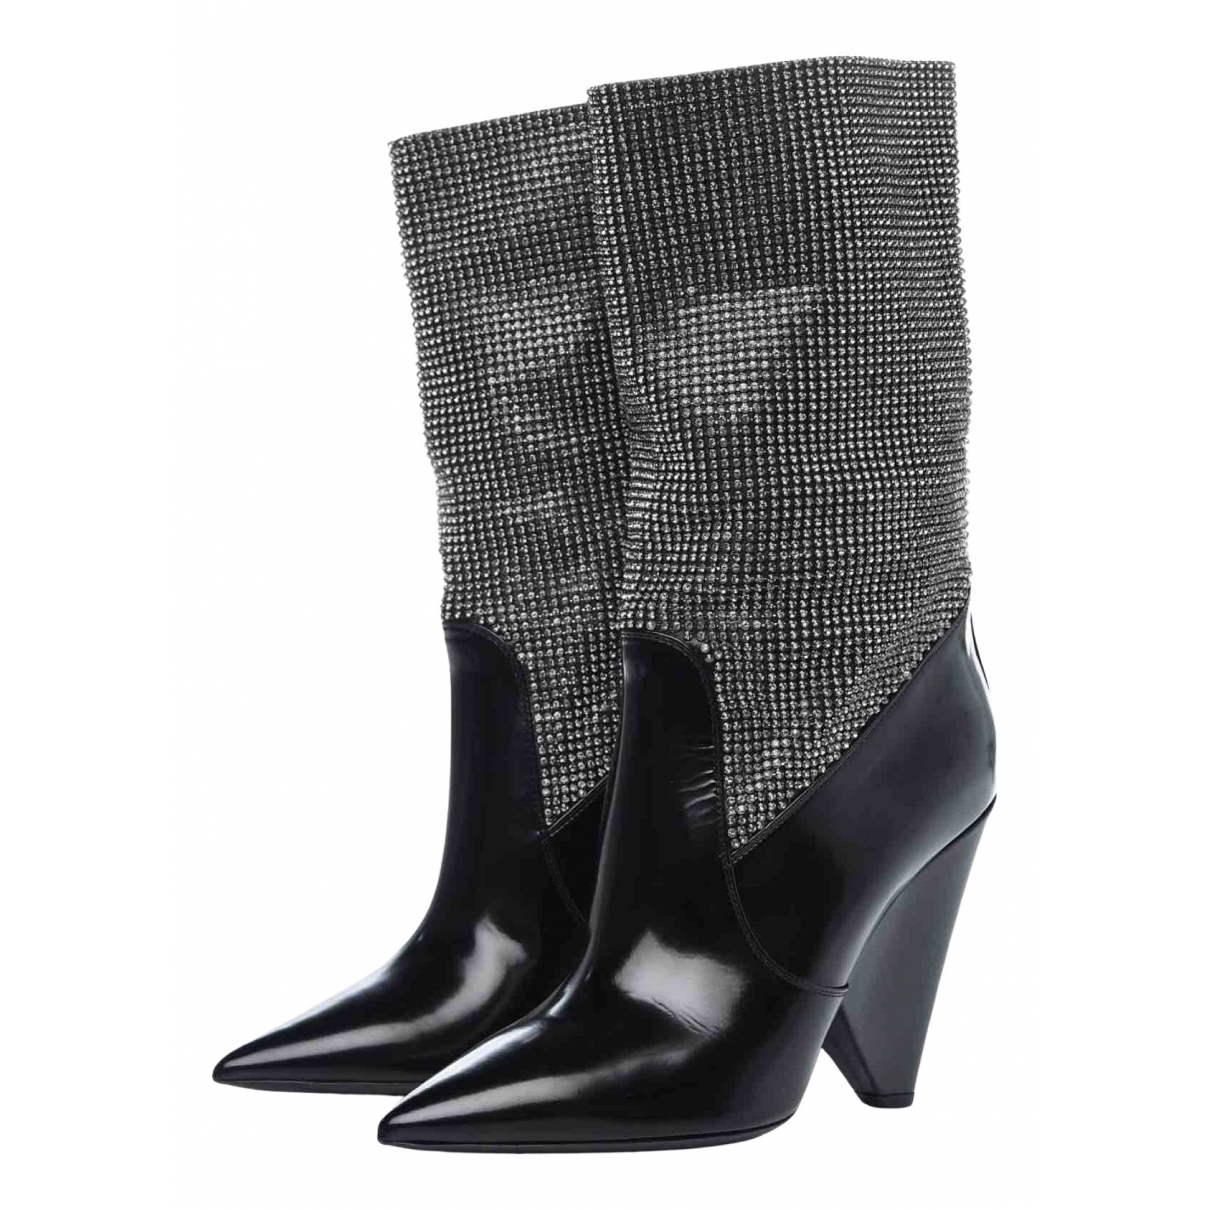 Saint Laurent Niki Stiefel in  Schwarz Leder